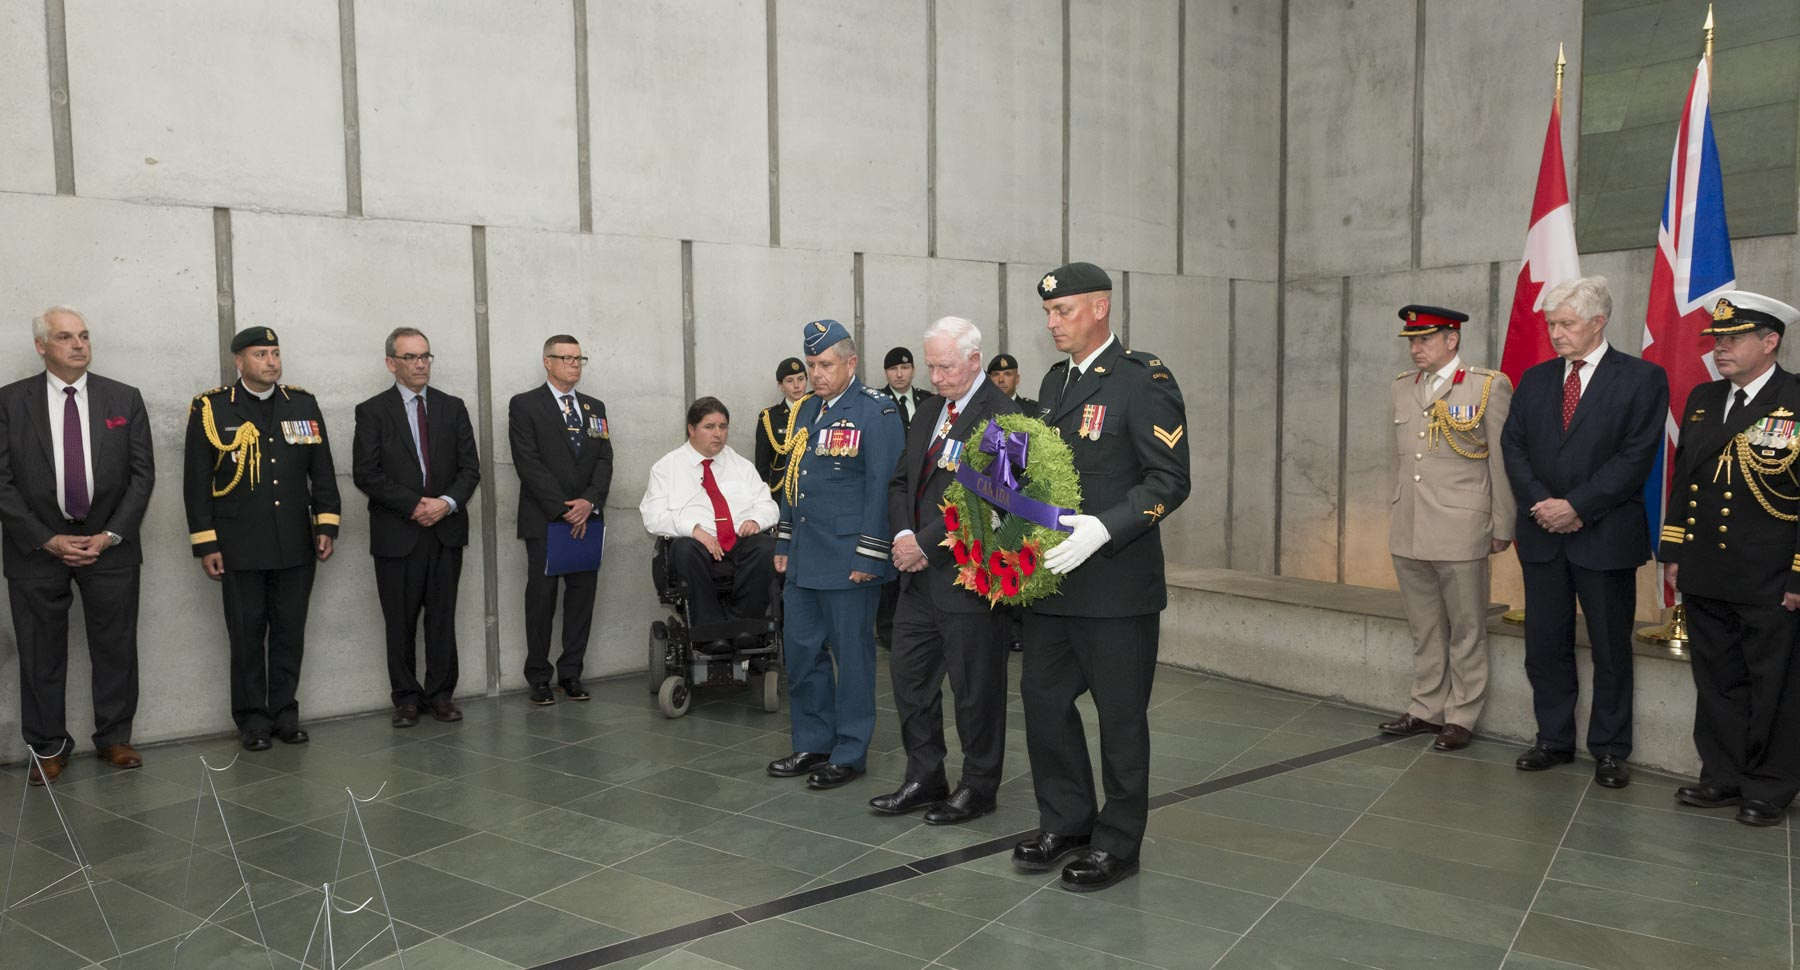 His Excellency the Right Honourable David Johnston, Governor General and Commander-in-Chief of Canada, attended the ceremony marking the centennial of the Commonwealth War Graves Commission (CWGC) at the Canadian War Museum on June 13, 2017.